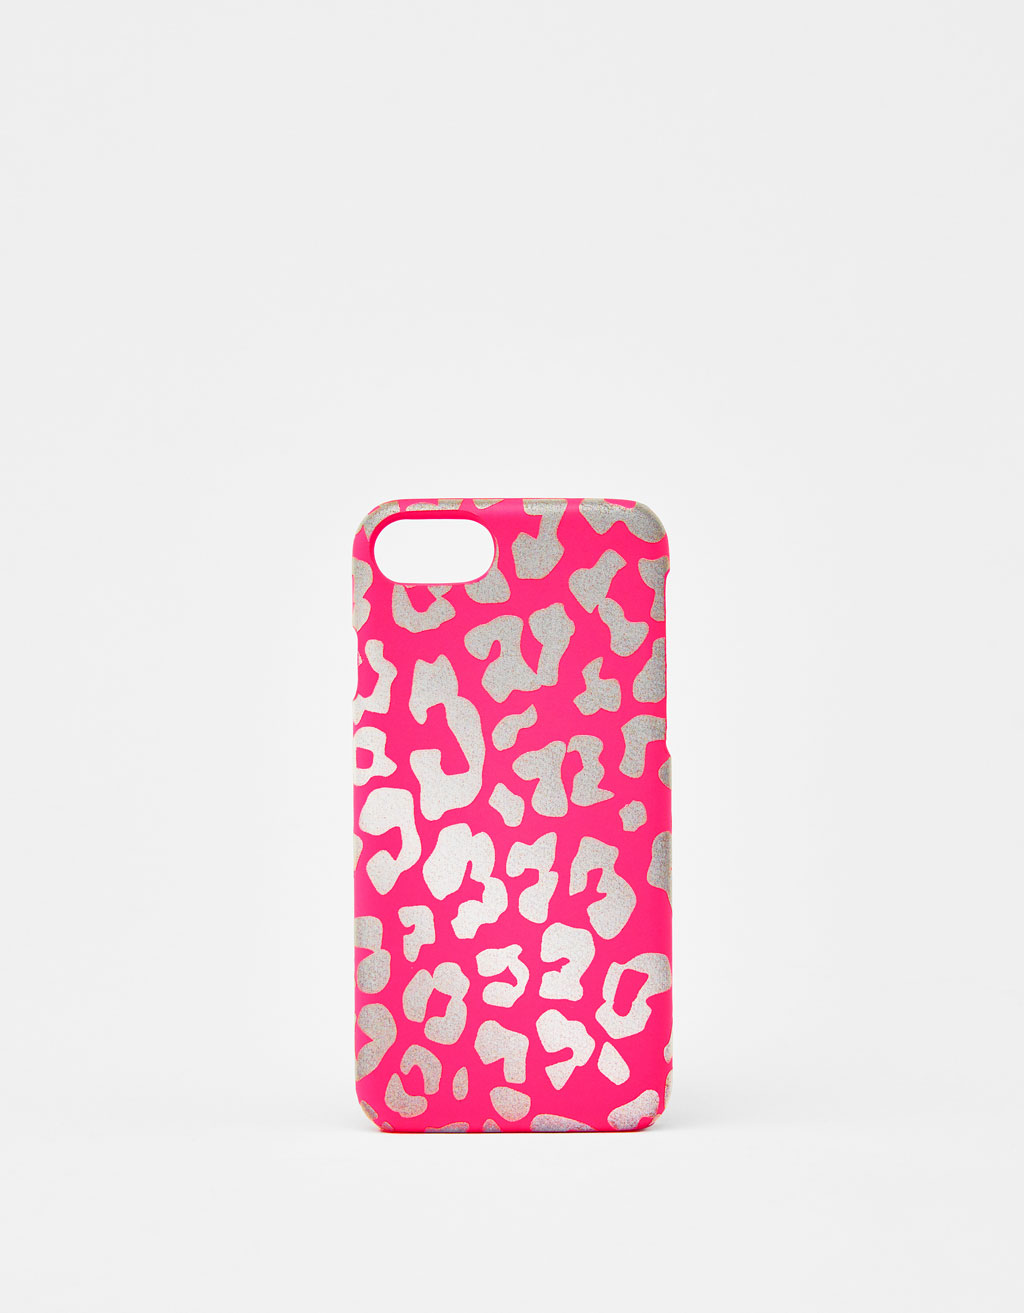 Carcasa leopardo reflectante iPhone 6 / 6S / 7/ 8